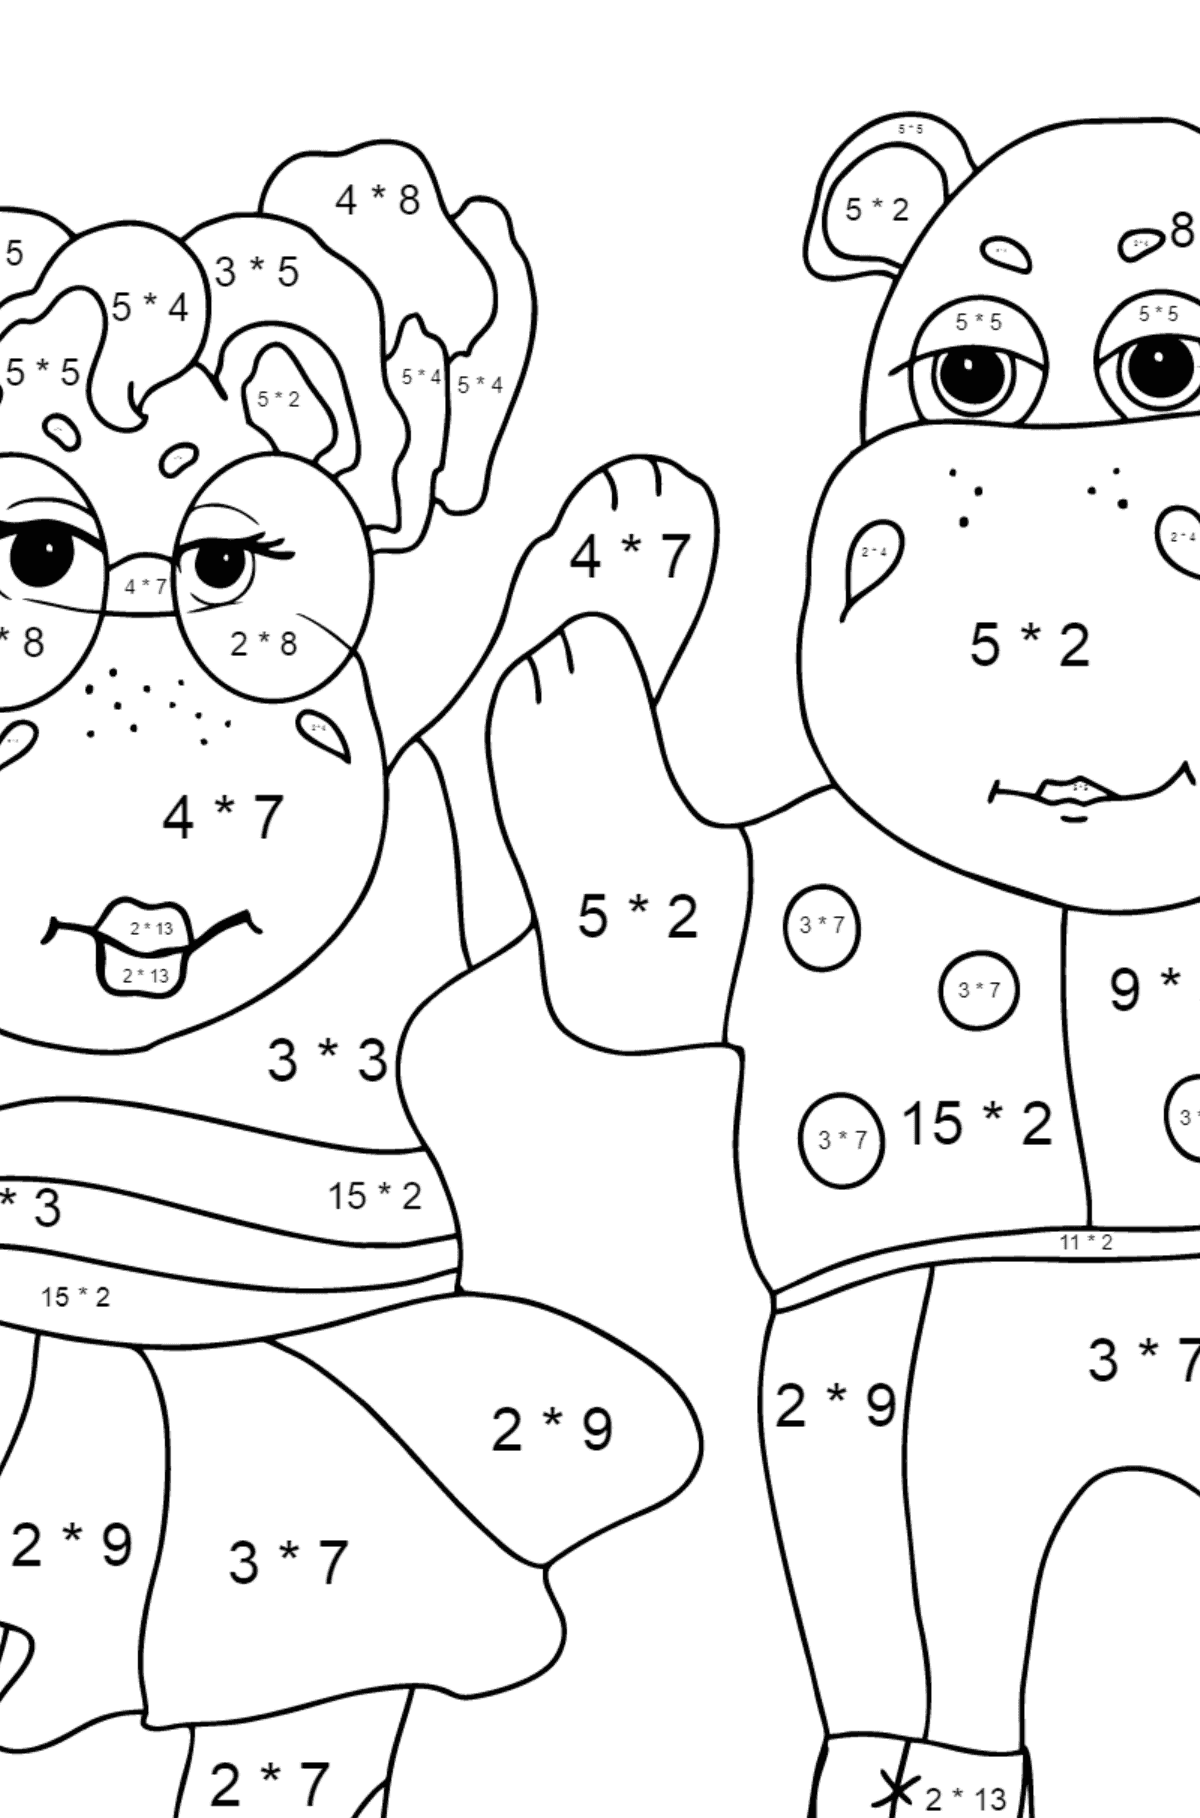 Coloring Page - Hippos are Dancing for Kids  - Color by Number Multiplication